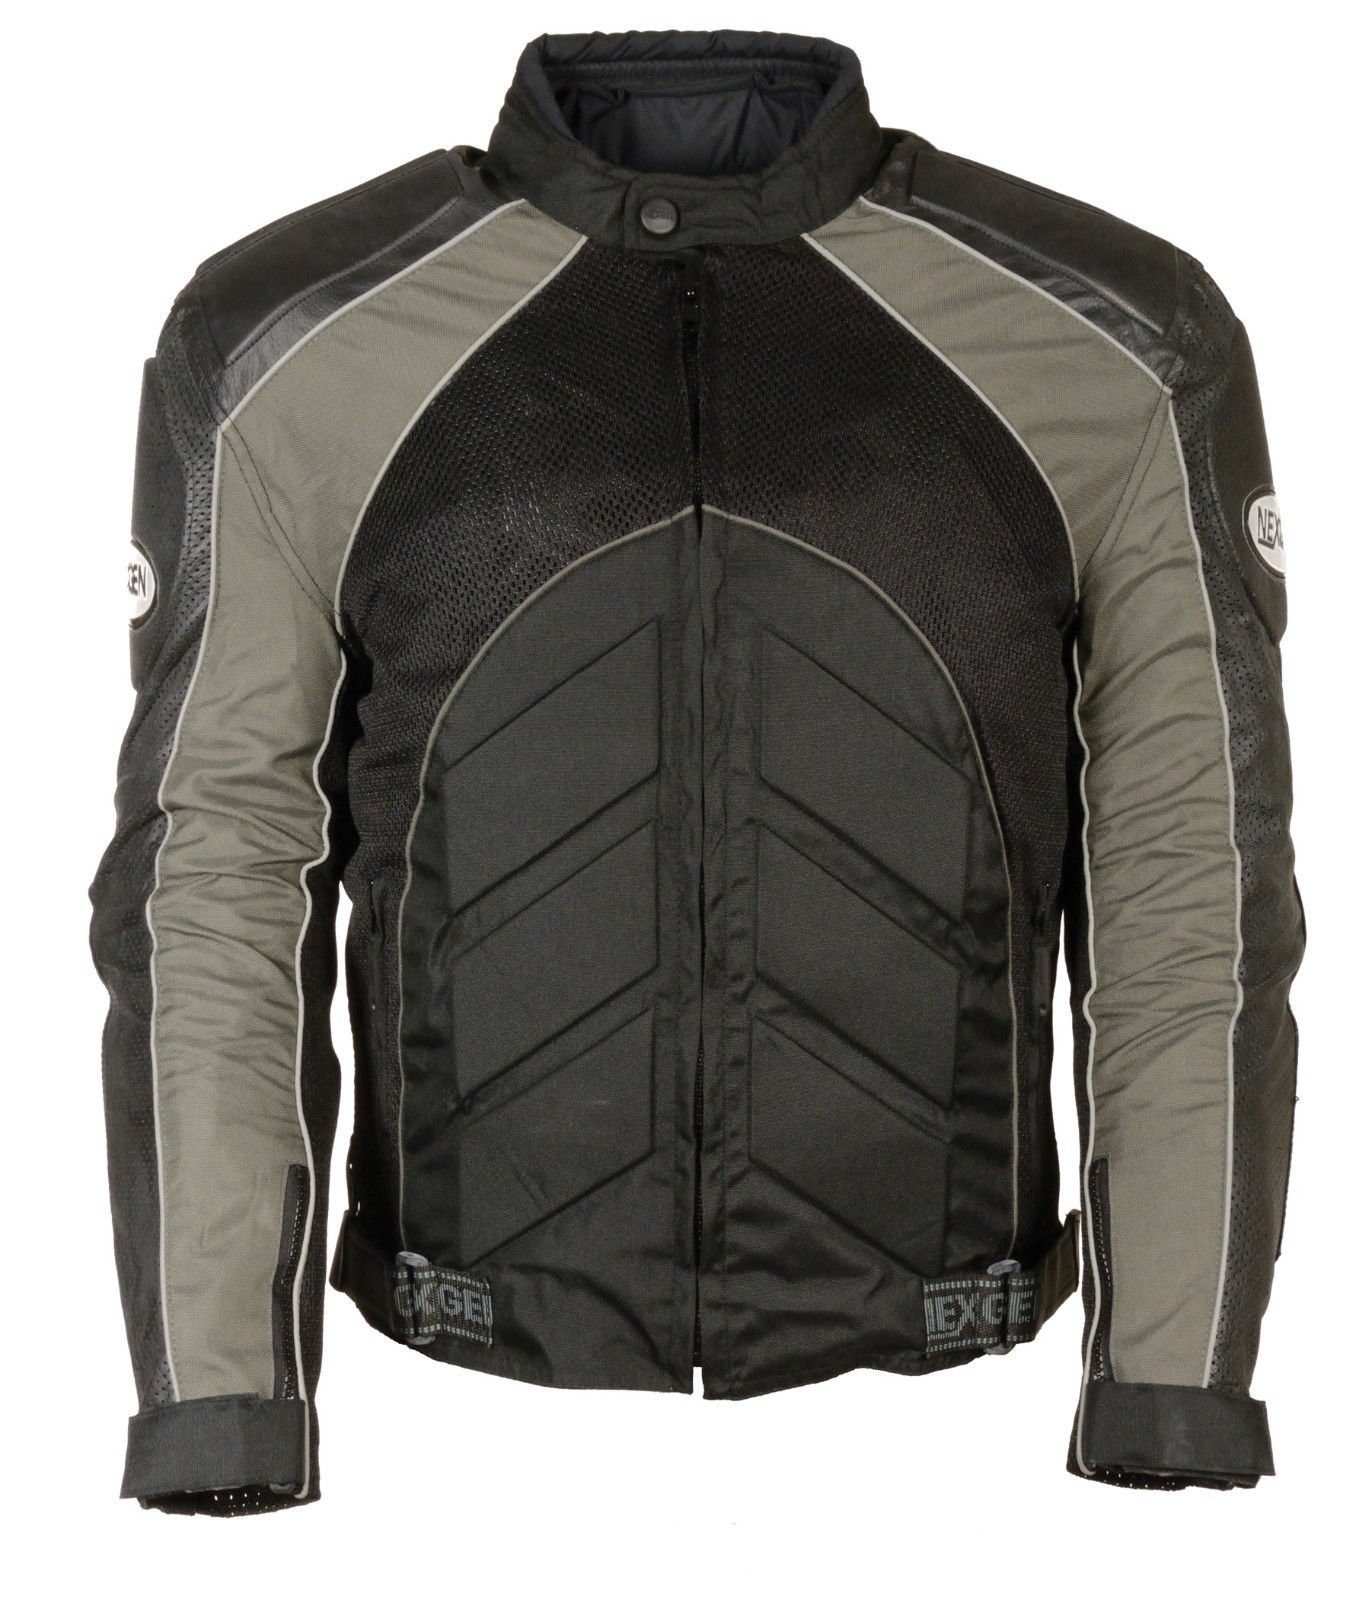 Men's Motorcycle BLK/Grey Mesh/Leather combo textile jacket with armors inside (XL Regular)